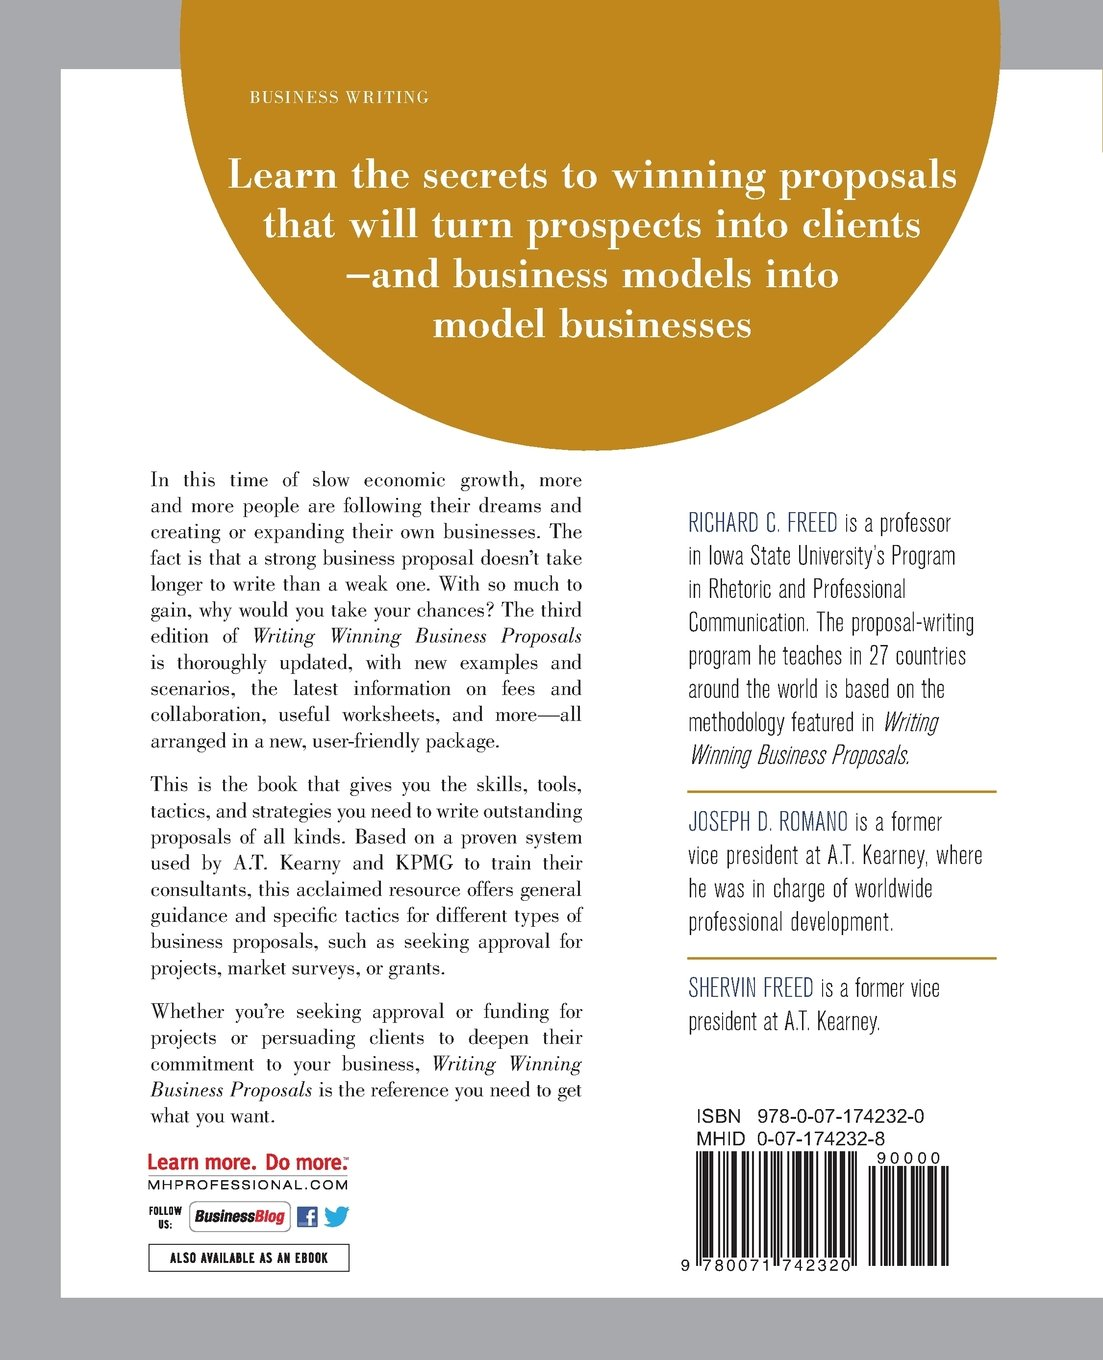 writing winning business proposals third edition richard c freed shervin freed joe romano 9780071742320 amazoncom books